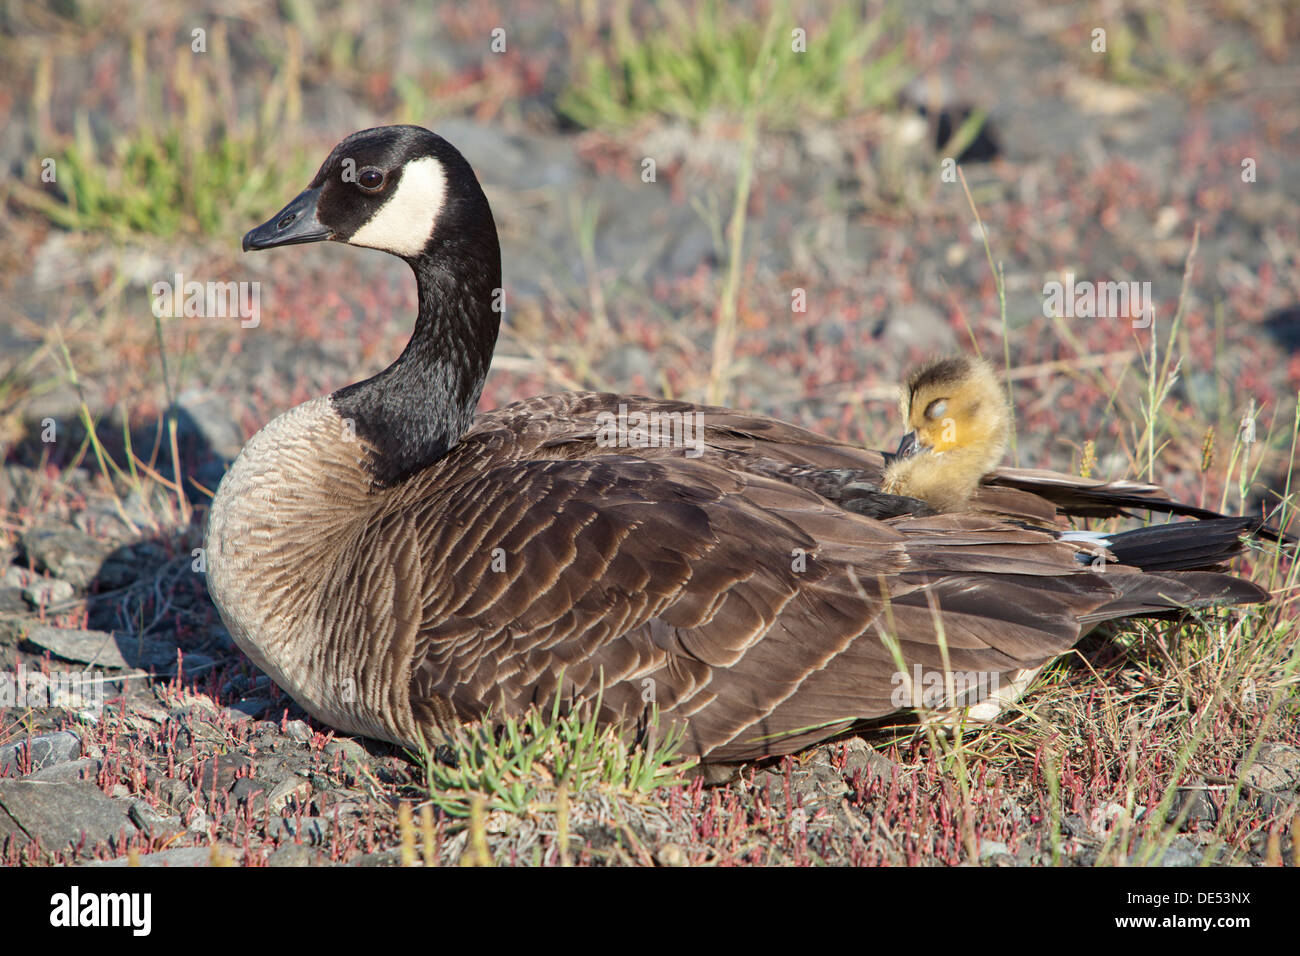 Canada Goose - Branta Canadensis -, Anchorage Coastal Wildlife Refuge, Potter Marsh, Alaska, U.S.A. - Stock Image